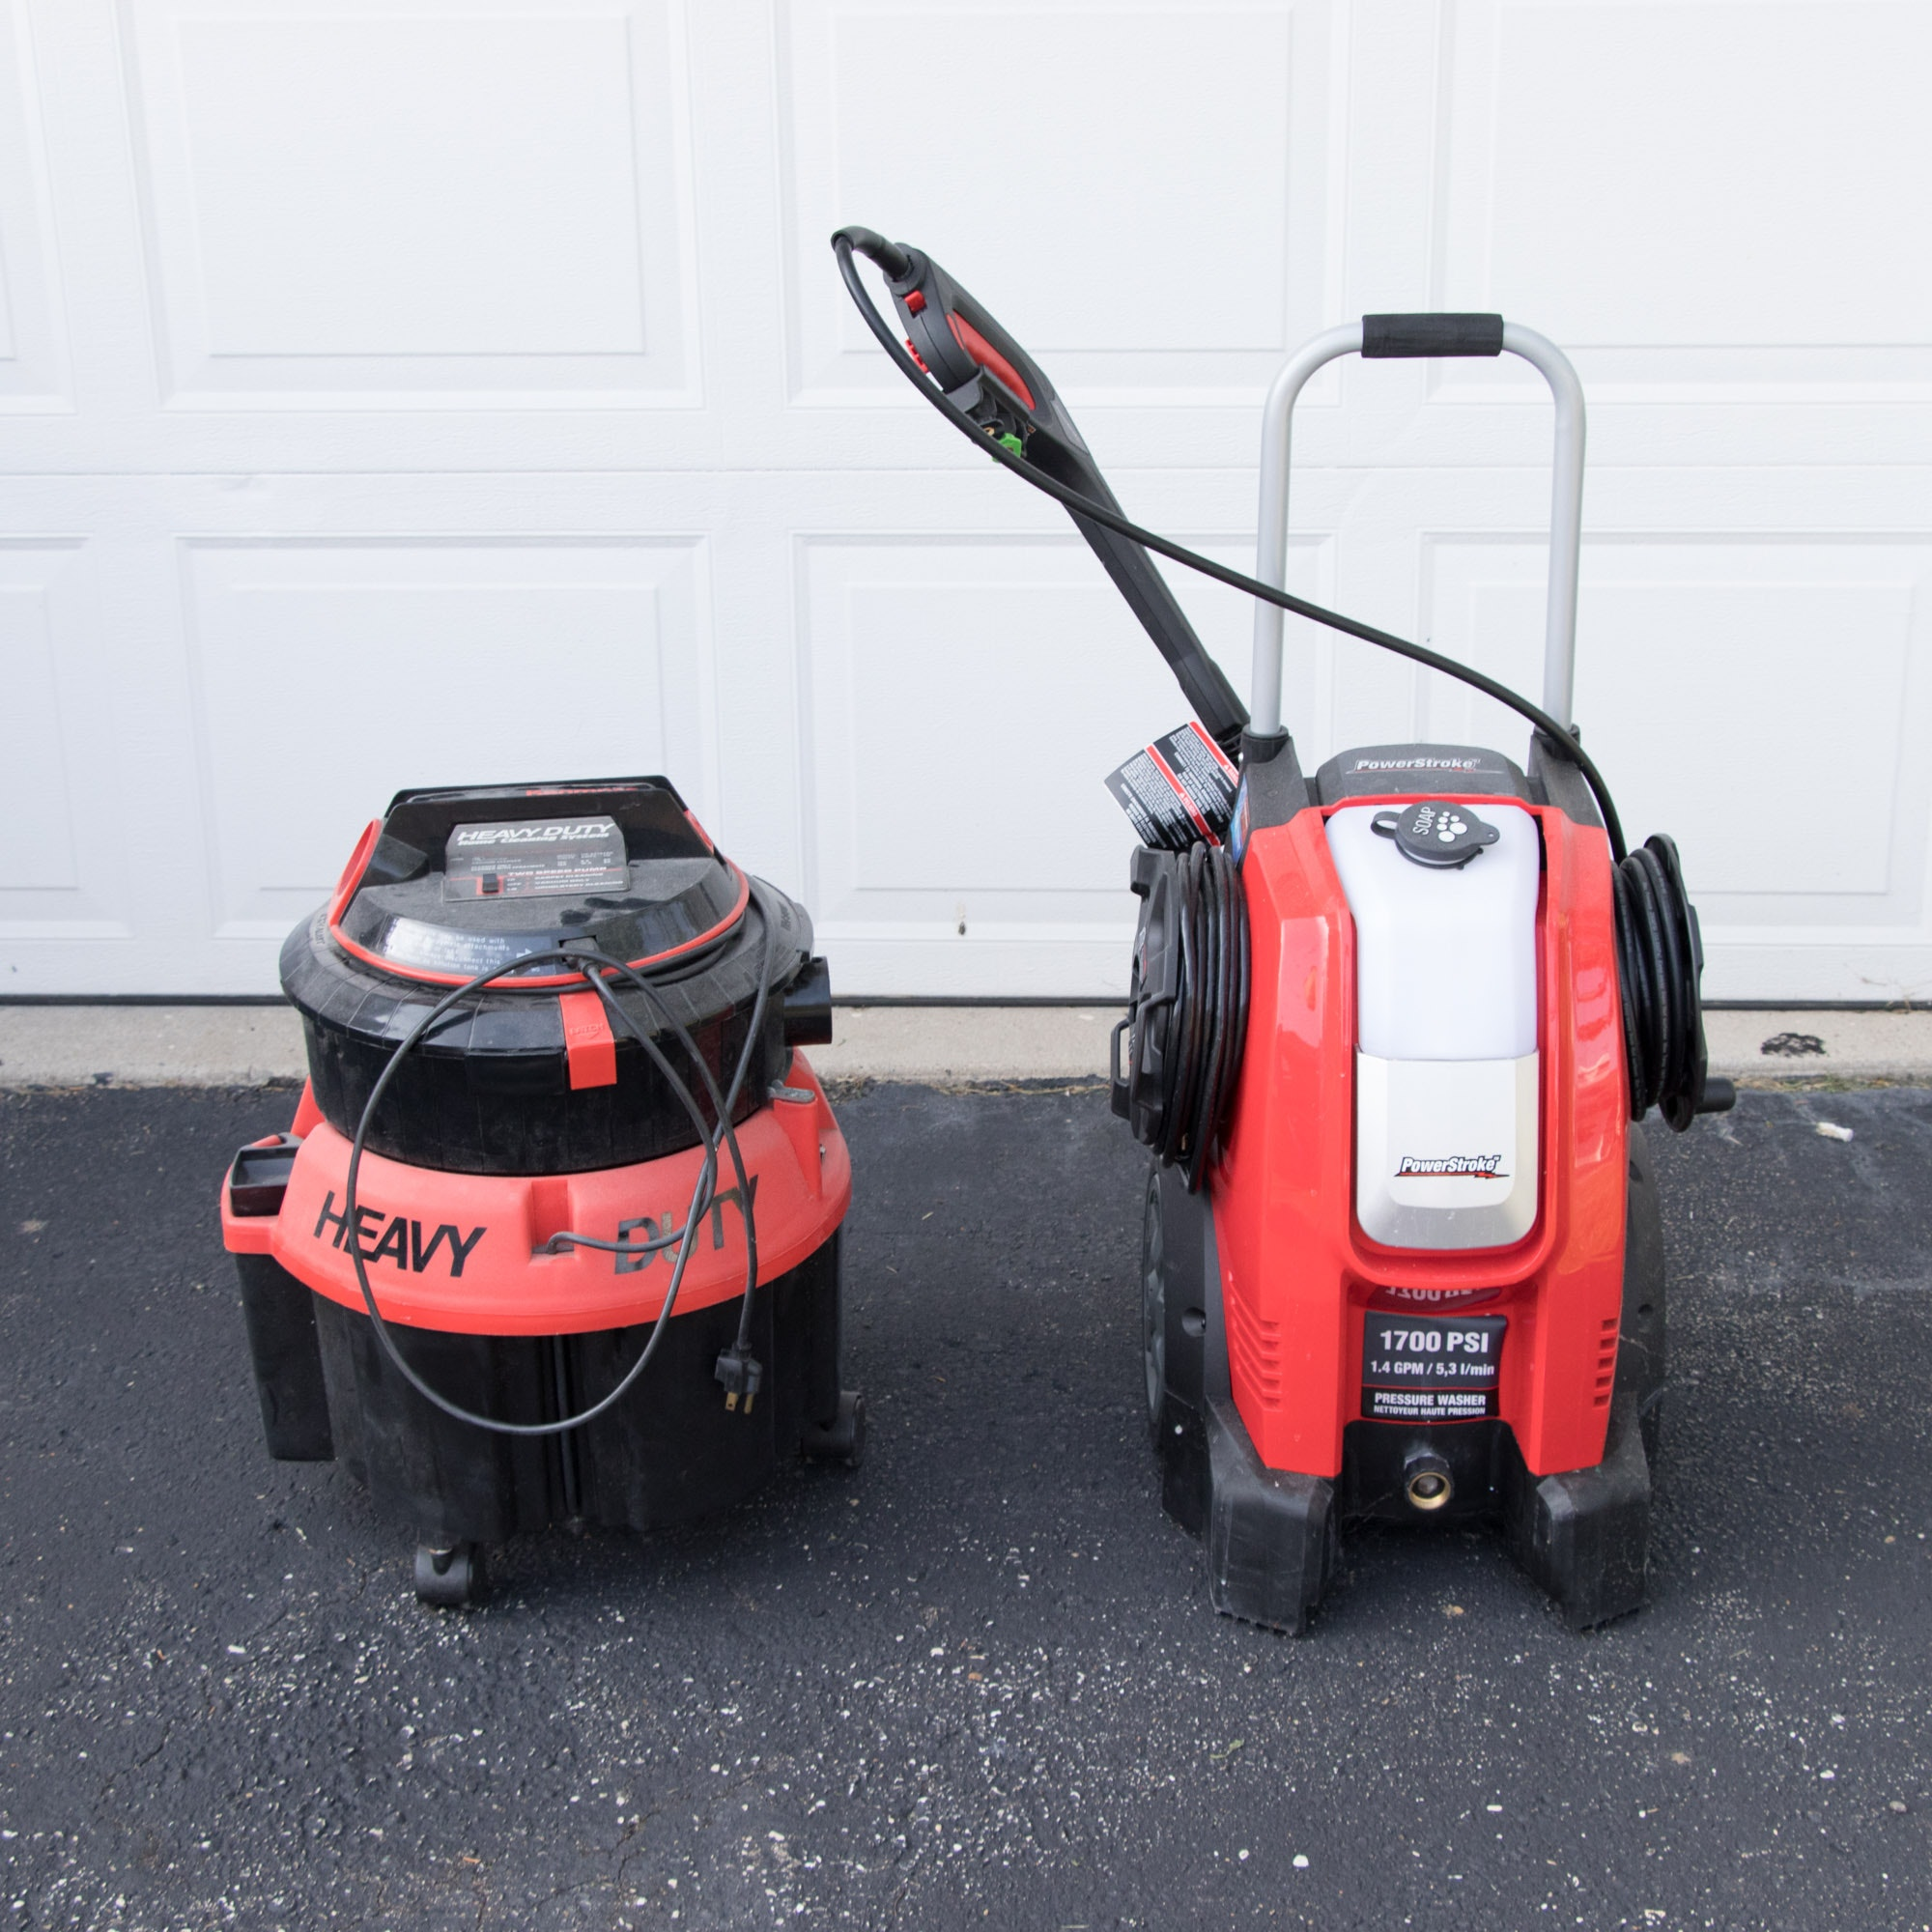 PowerStroke 1700 PSI Pressure Washer and Kenmore Power Spray Carpet Cleaner